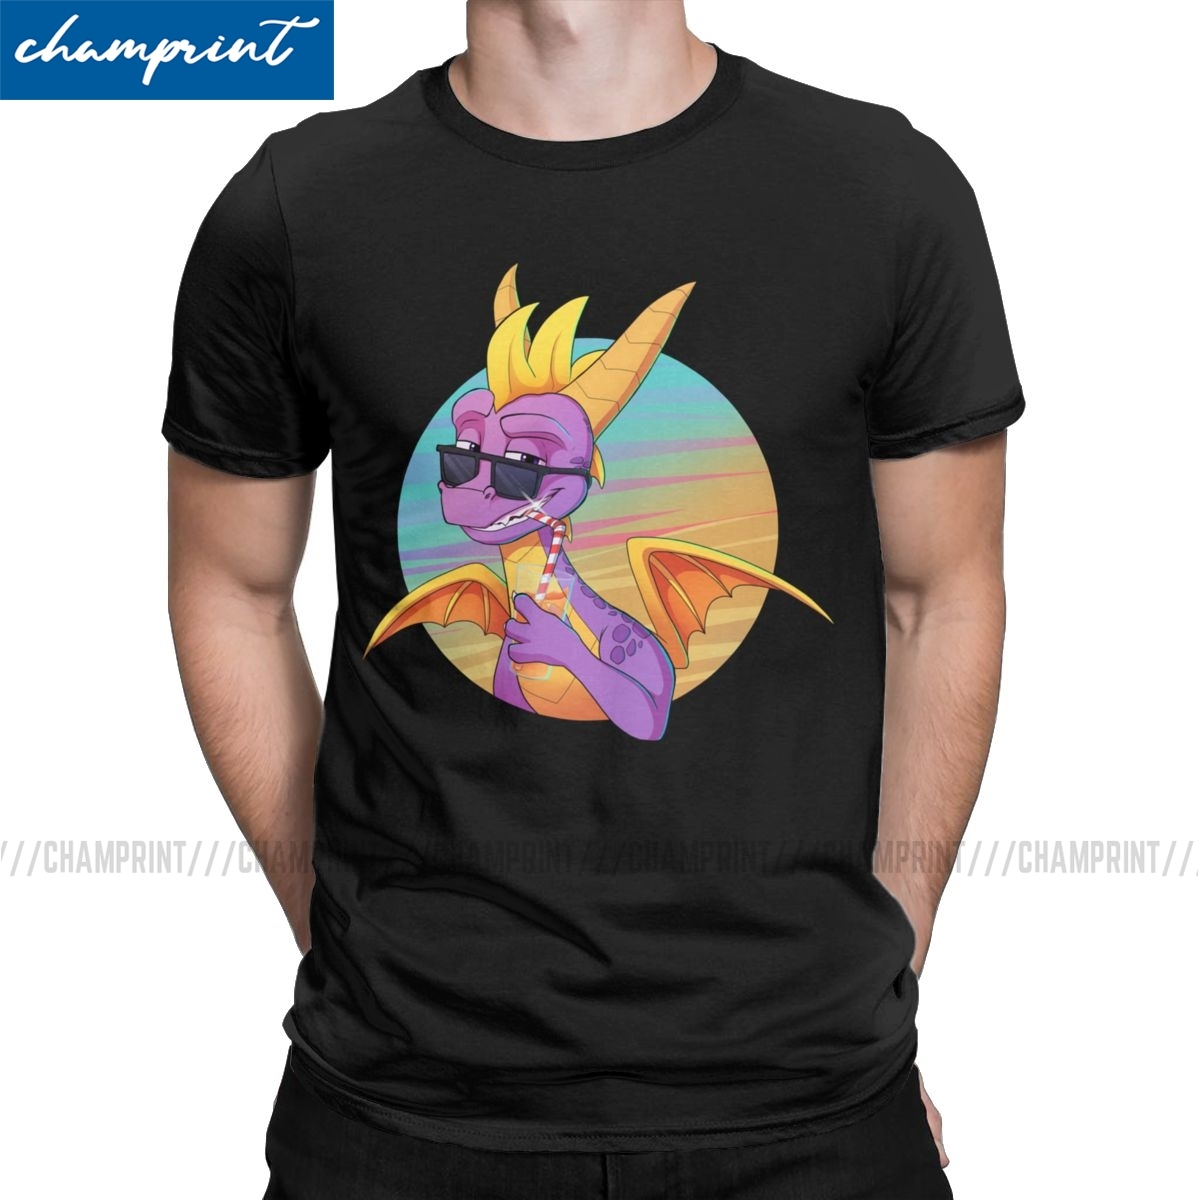 Funny Summer Vibes T-Shirt for Men Round Neck T Shirt Spyro the Dragon Purple Dragon Game Tee Shirt Gift Idea Clothes image